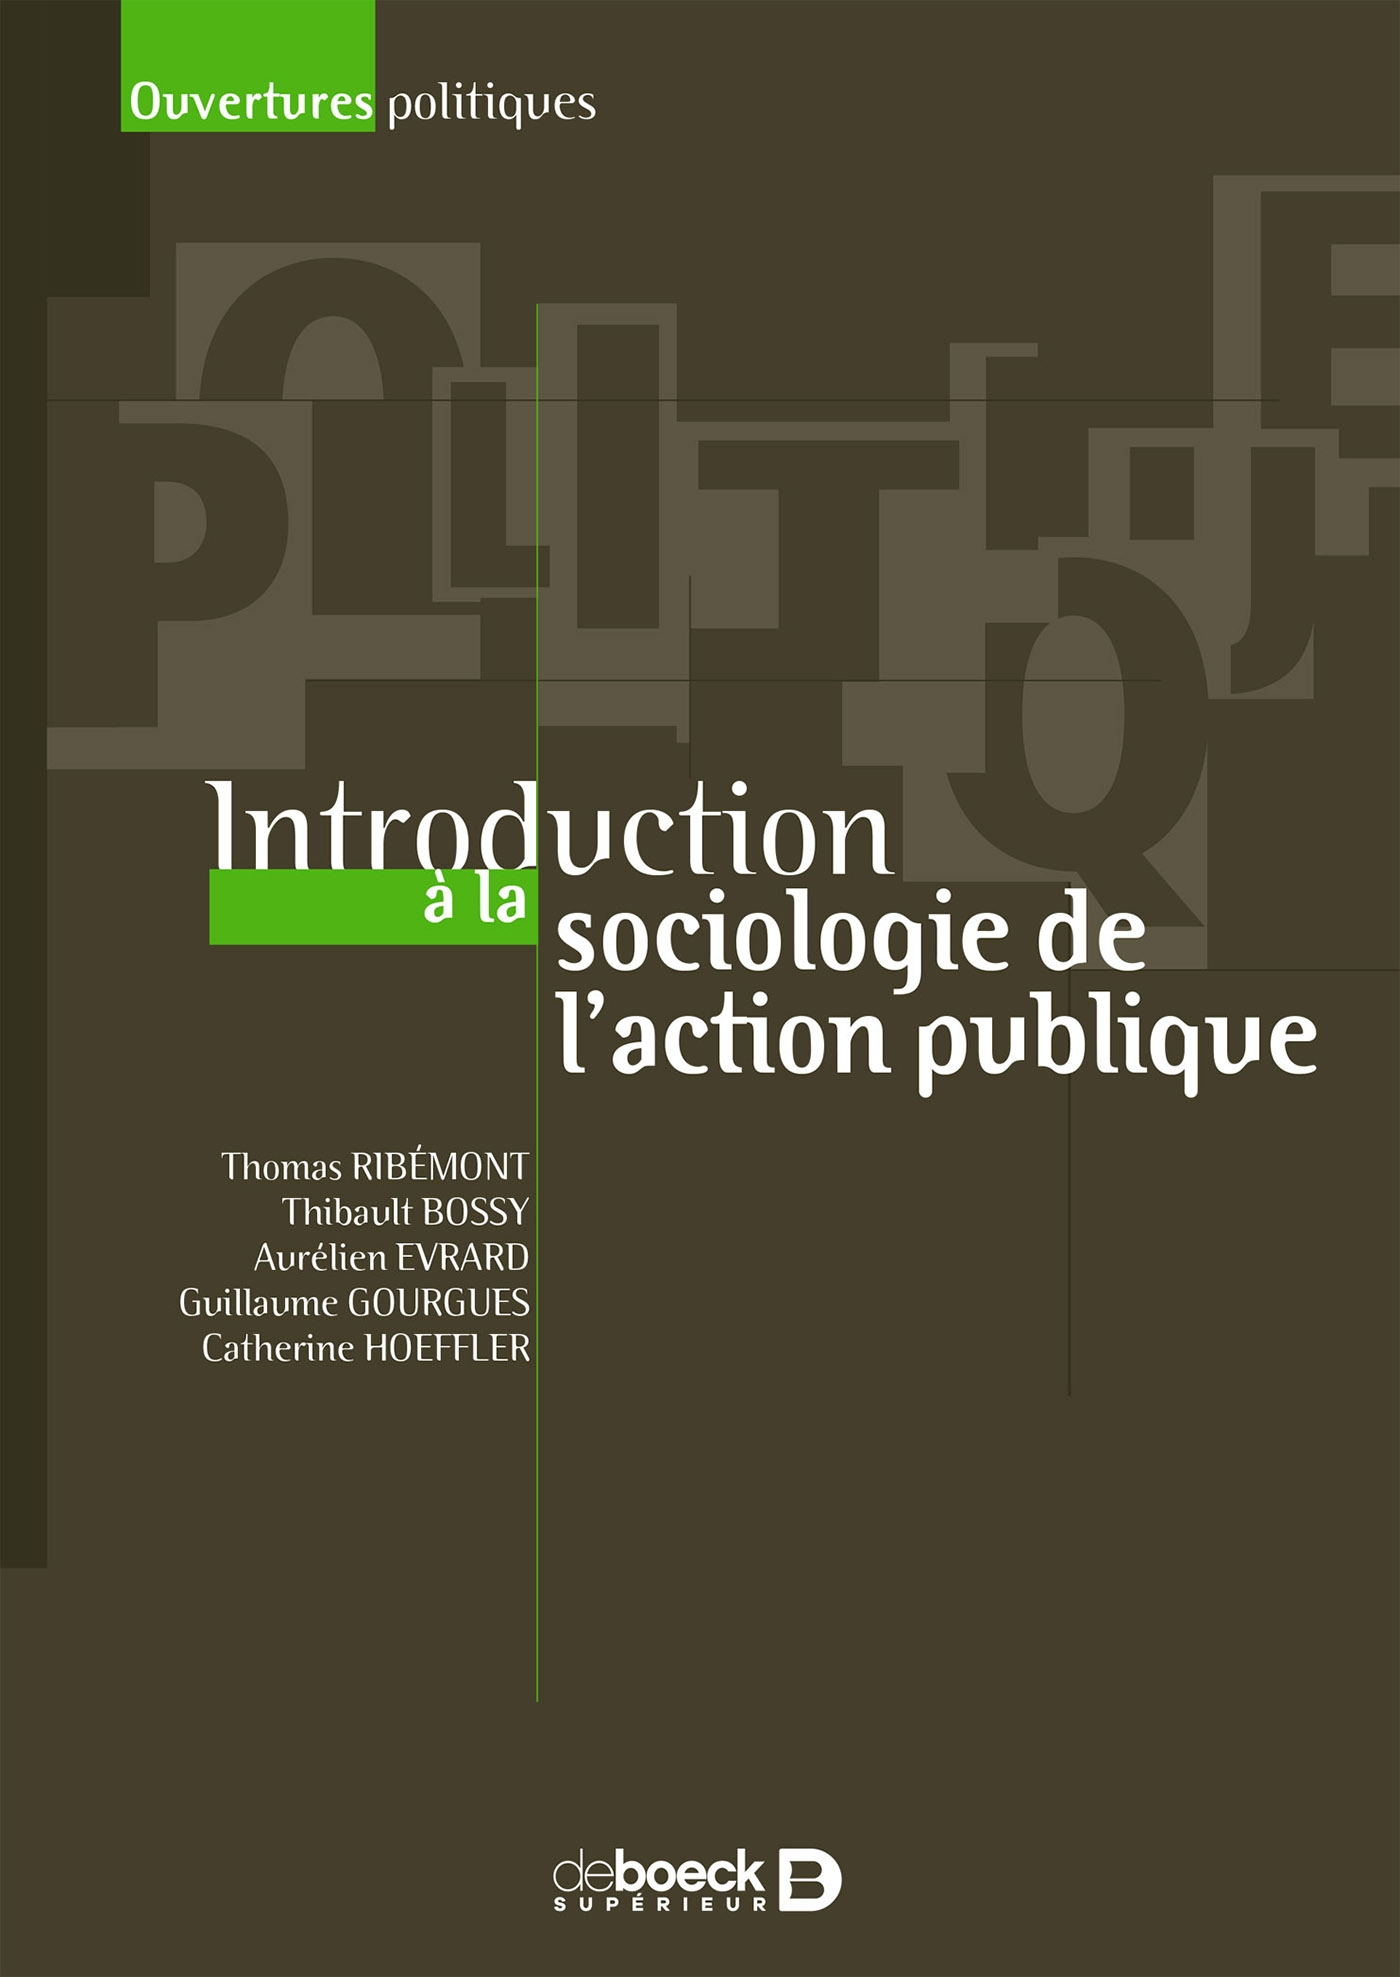 Introduction à la sociologie de l'action publique